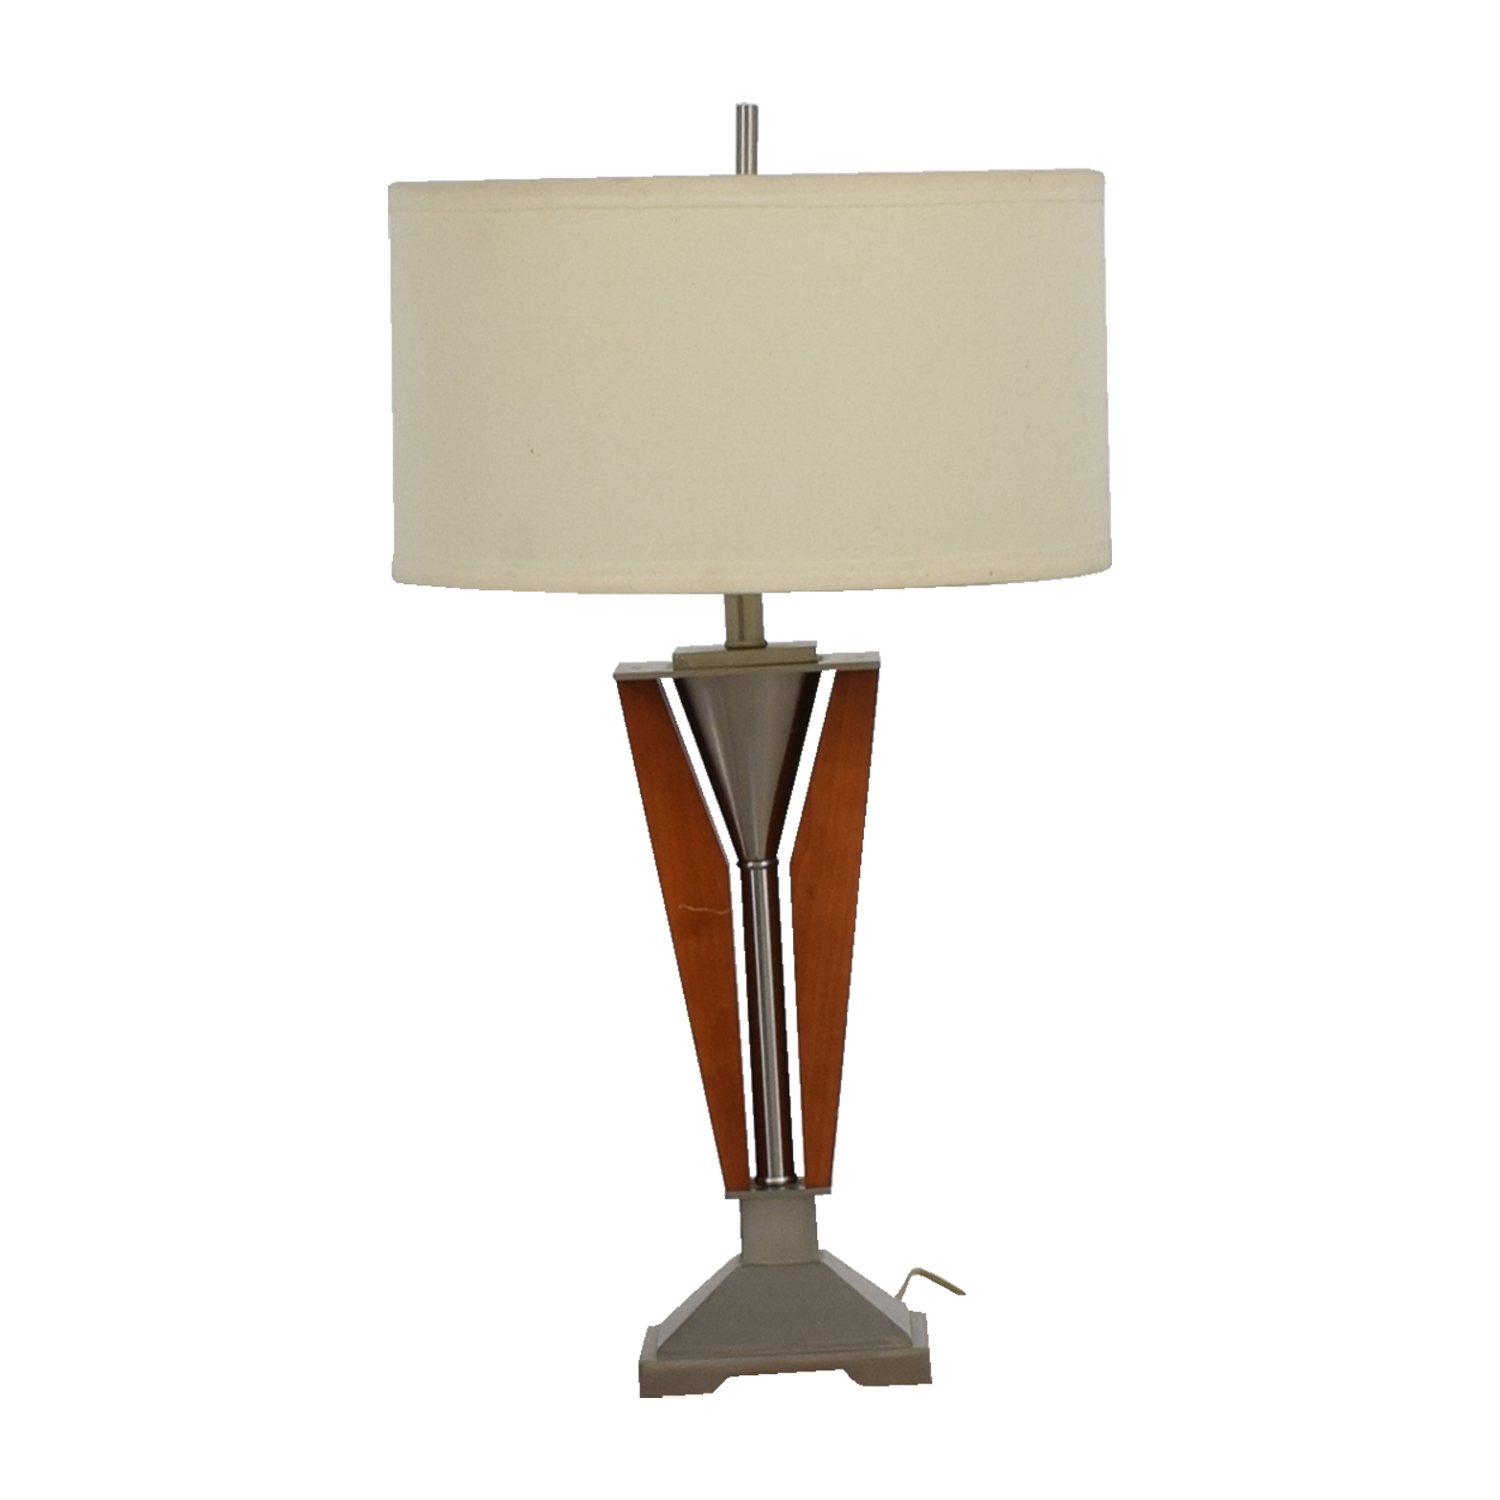 IKEA IKEA Mohagany and Stainless Steel Table Lamp CREAM / SILVER / LIGHT BROWN